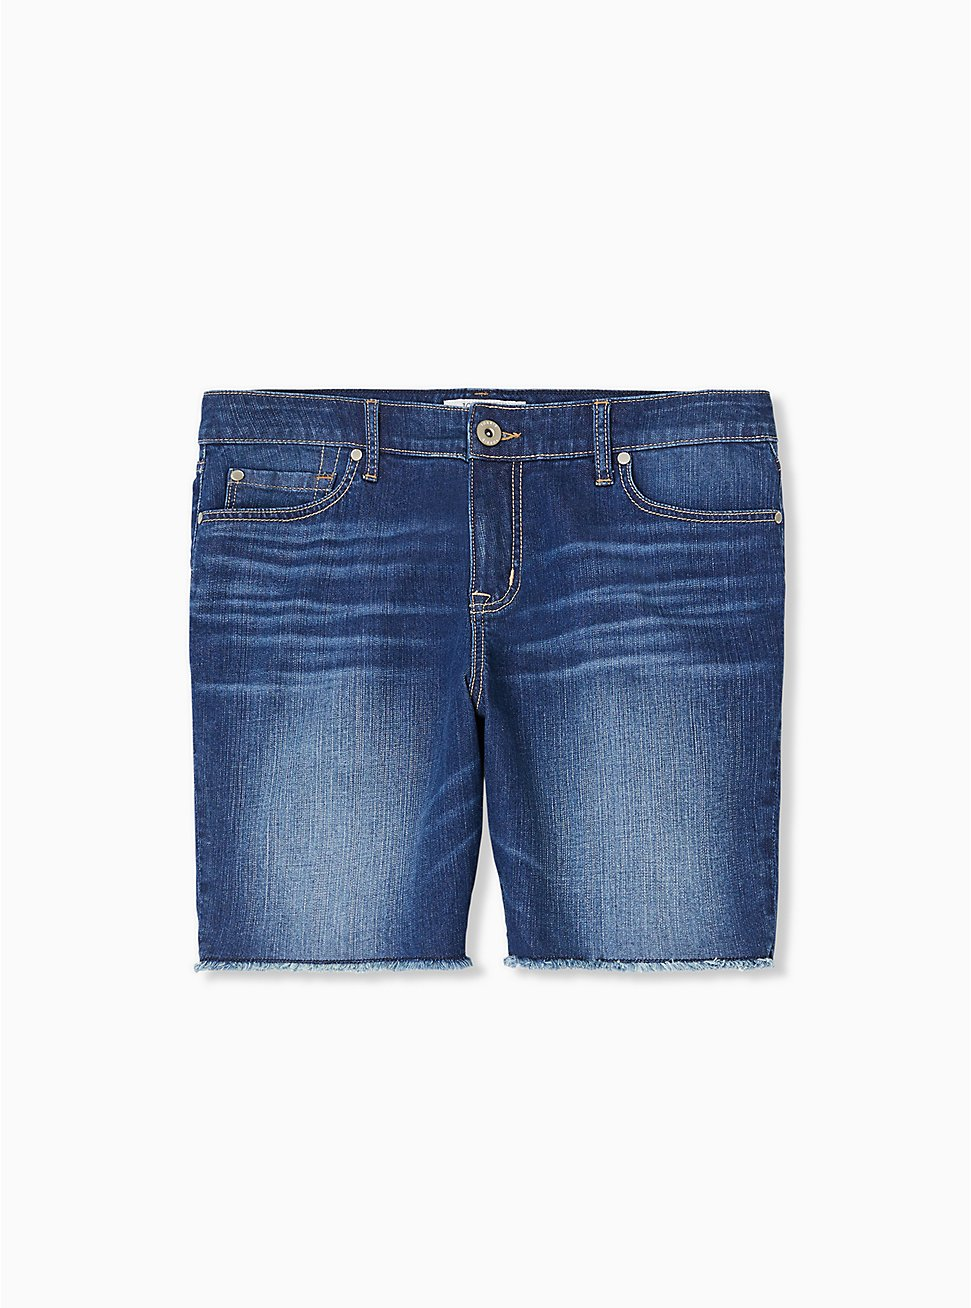 Bermuda Short - Vintage Stretch Medium Wash , PRIMO, hi-res